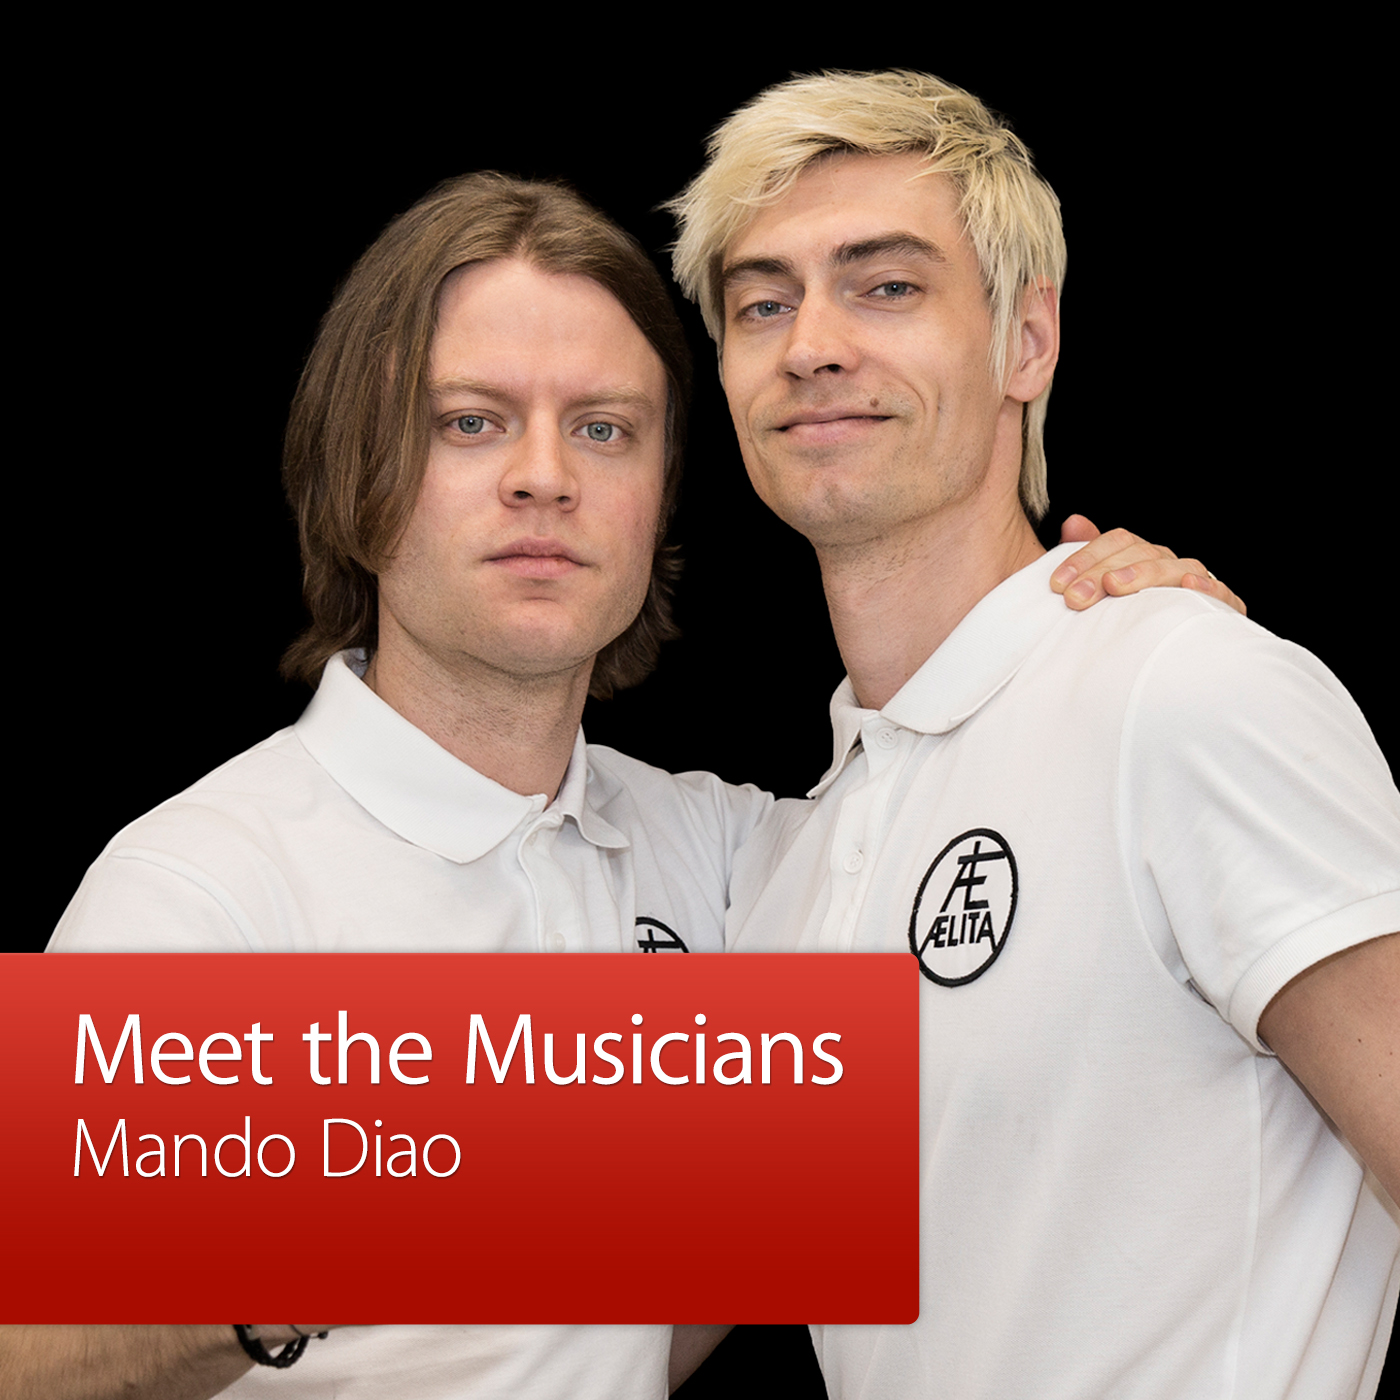 Mando Diao: Meet the Musician